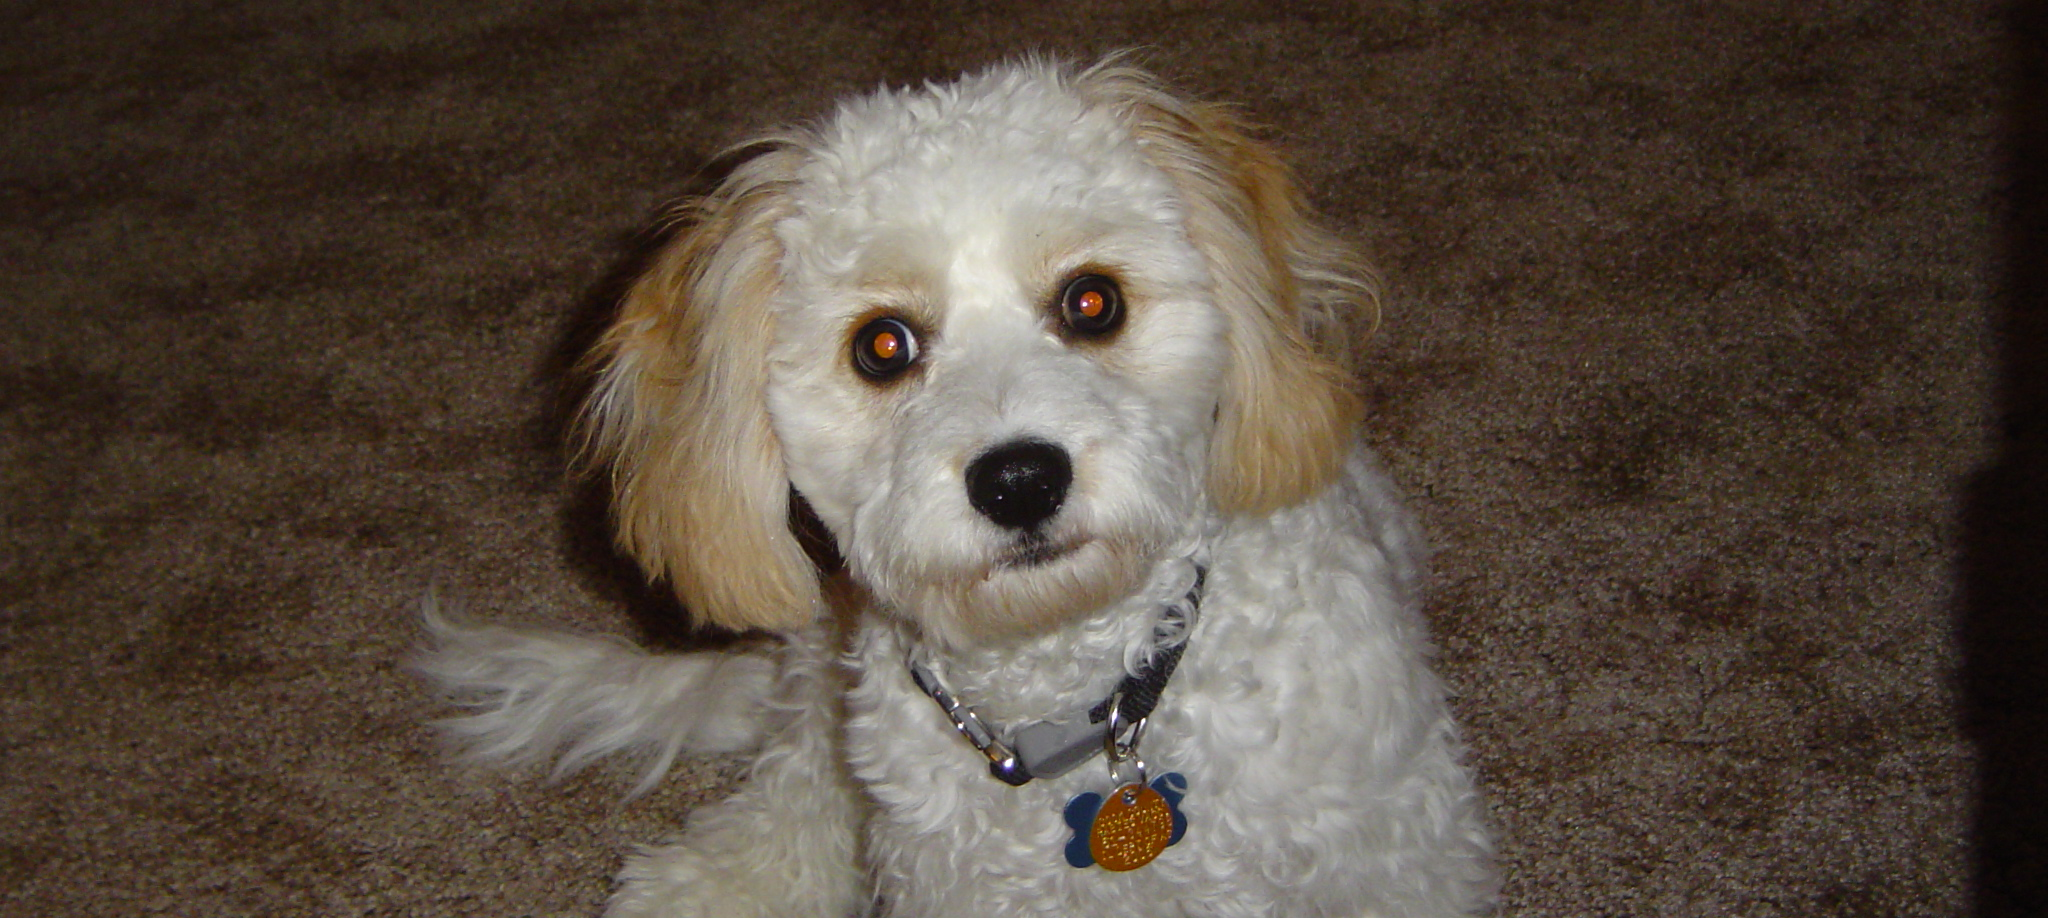 Cavachon Information - Dog Breeds at dogthelove - photo#43